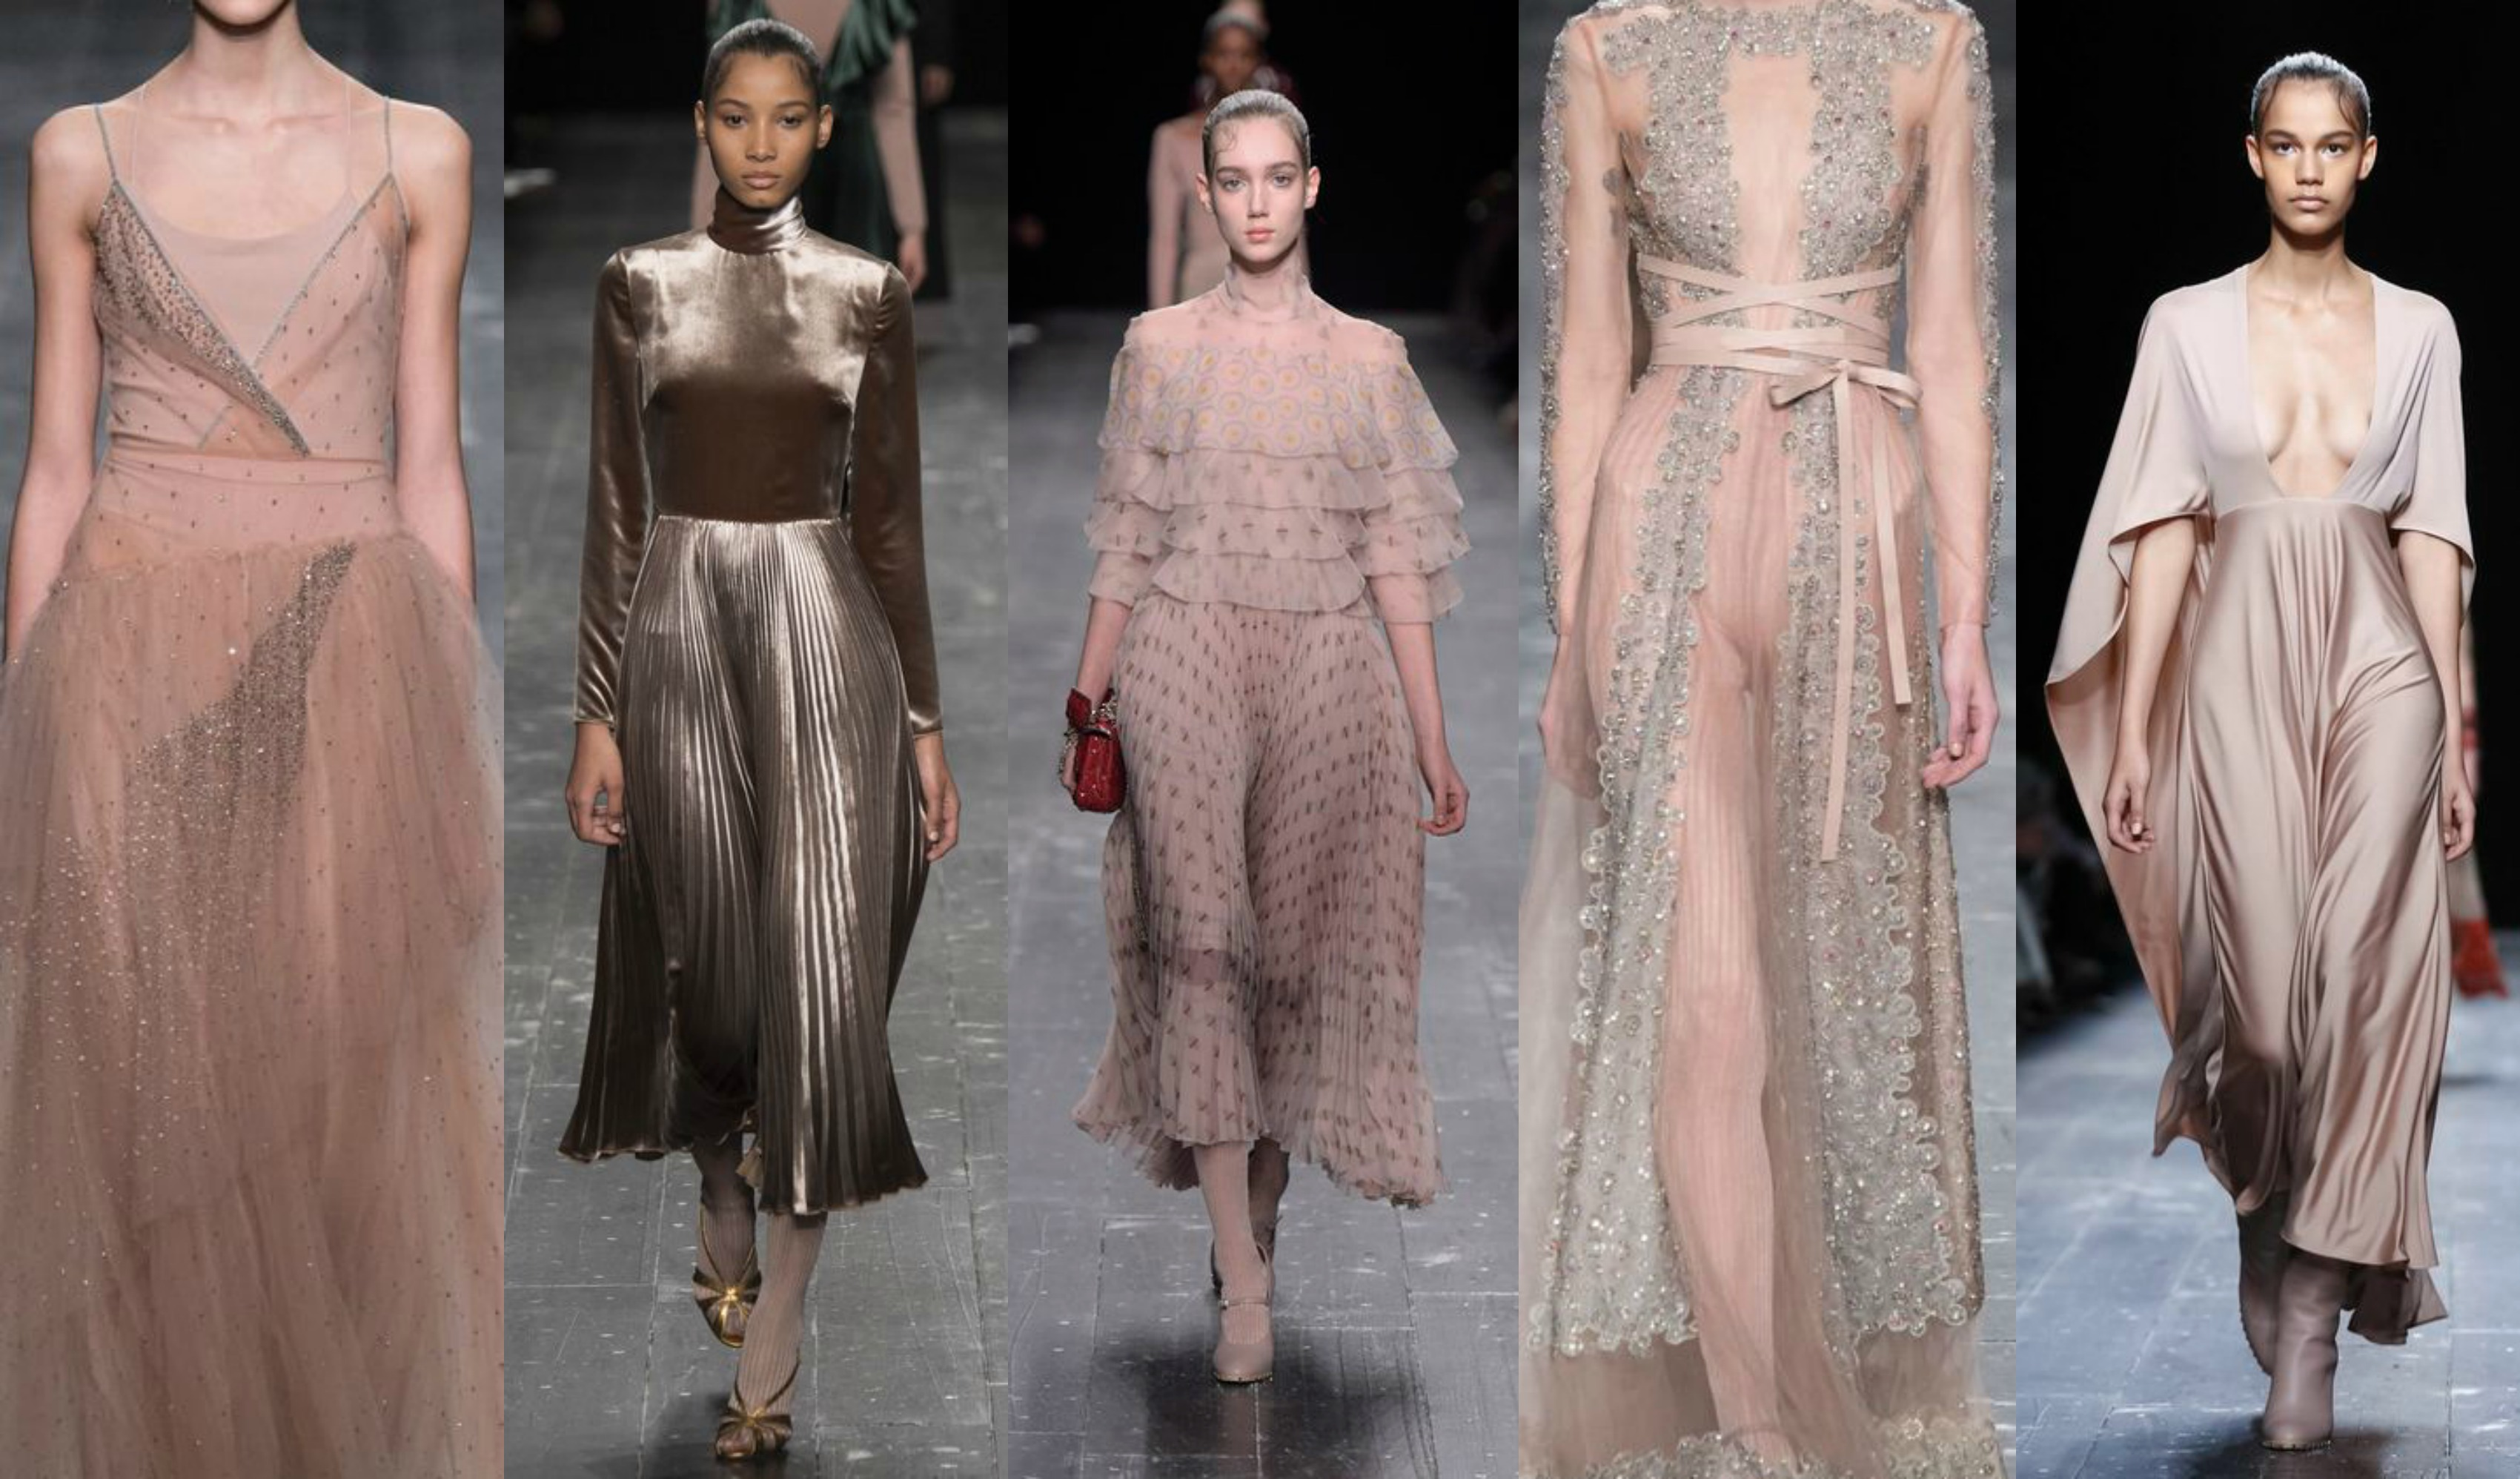 Valentino fall 2016 rtw, the ballet theory, tendenze autunno inverno 2016, fashion trend fall winter 2016, best fall winter trend 2016, cosa va di moda adesso 2016, autunno 2016 cosa va di moda, inverno 2016 cosa va di moda, come vestirsi settembre 2016, come vestirsi nuova stagione, fashion blog italia, fashion blogger italiane 2016, fashion blog 2016, fashion blogger milano 2016, fashion blogger famose 2016, elisa bellino